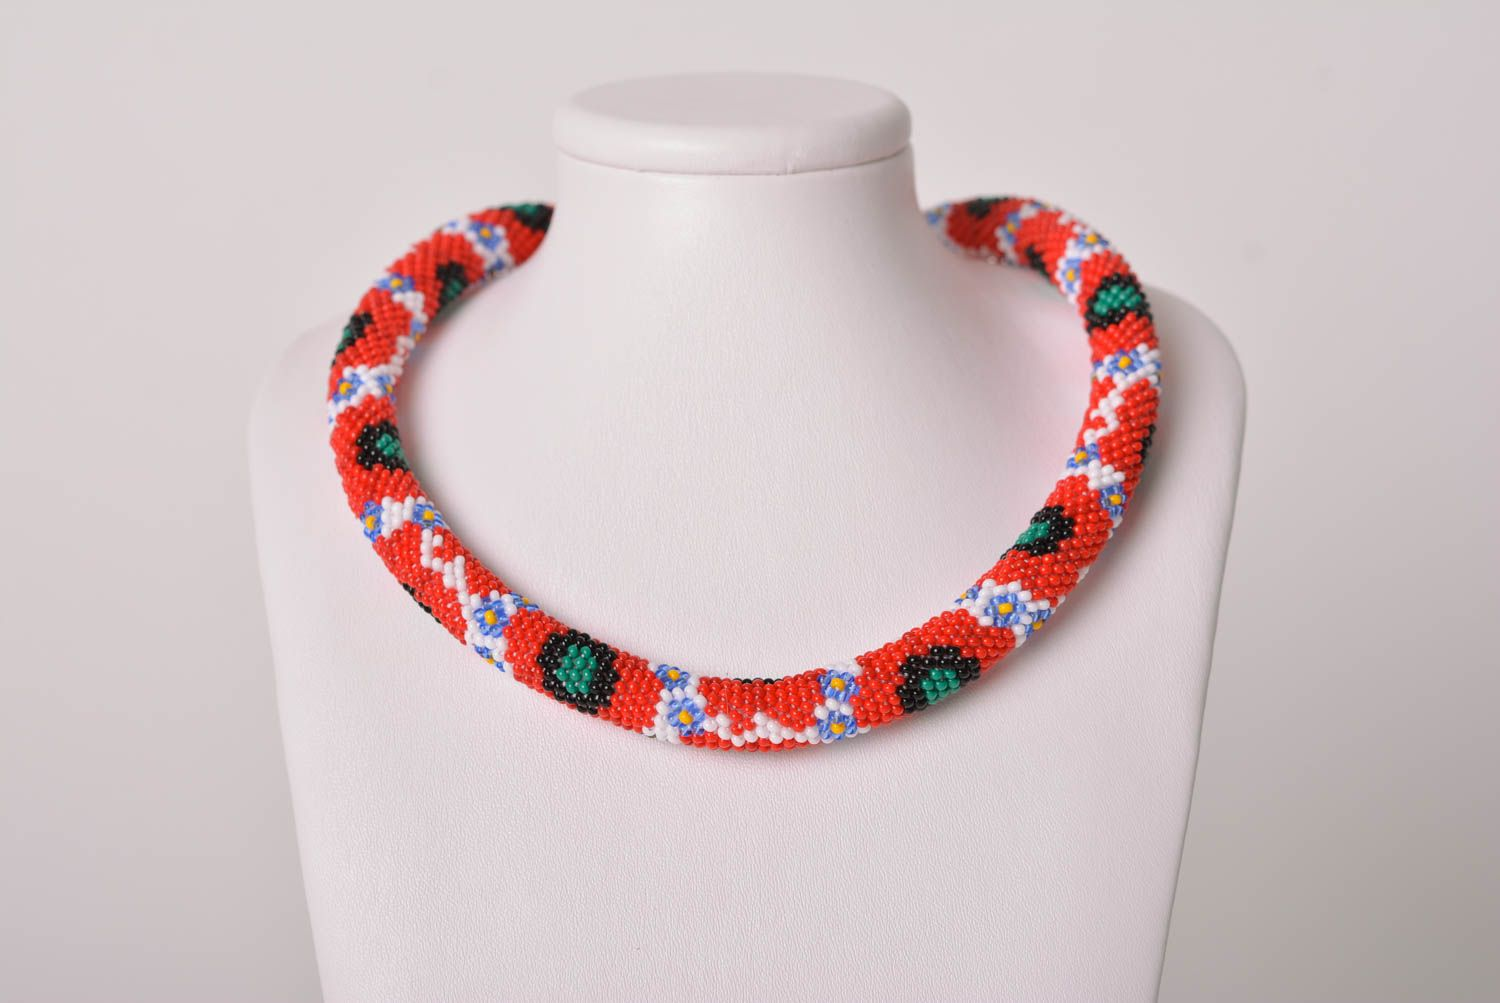 Handmade jewelry stylish necklace beaded cord necklase designer accessory  photo 2